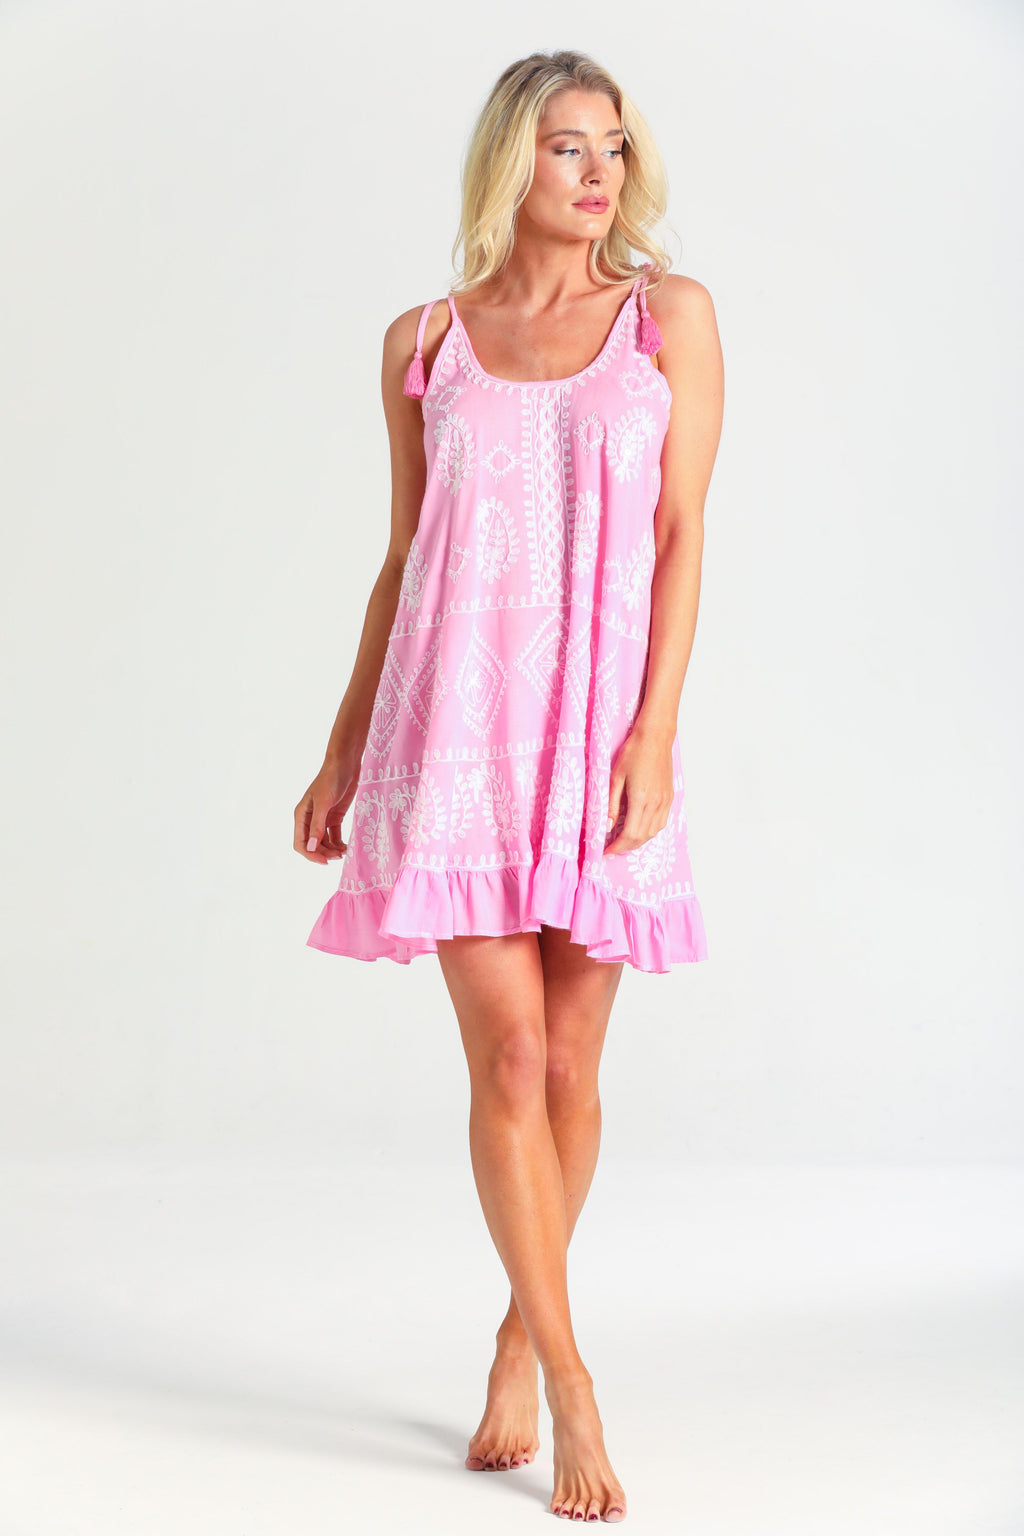 Olivia Embroidery slip Dress in Pink/White